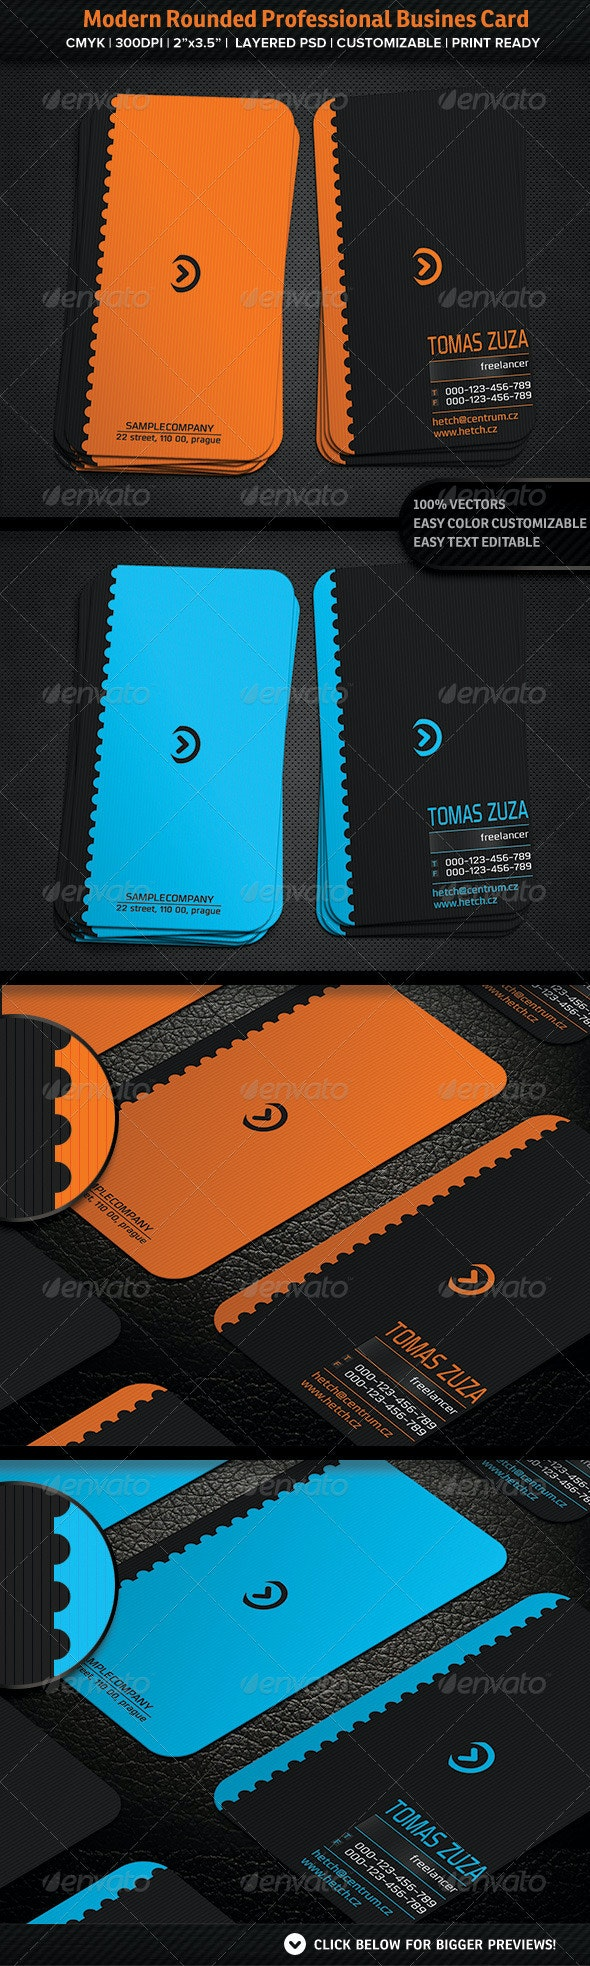 Modern Rounded Professional Busines Card - Creative Business Cards